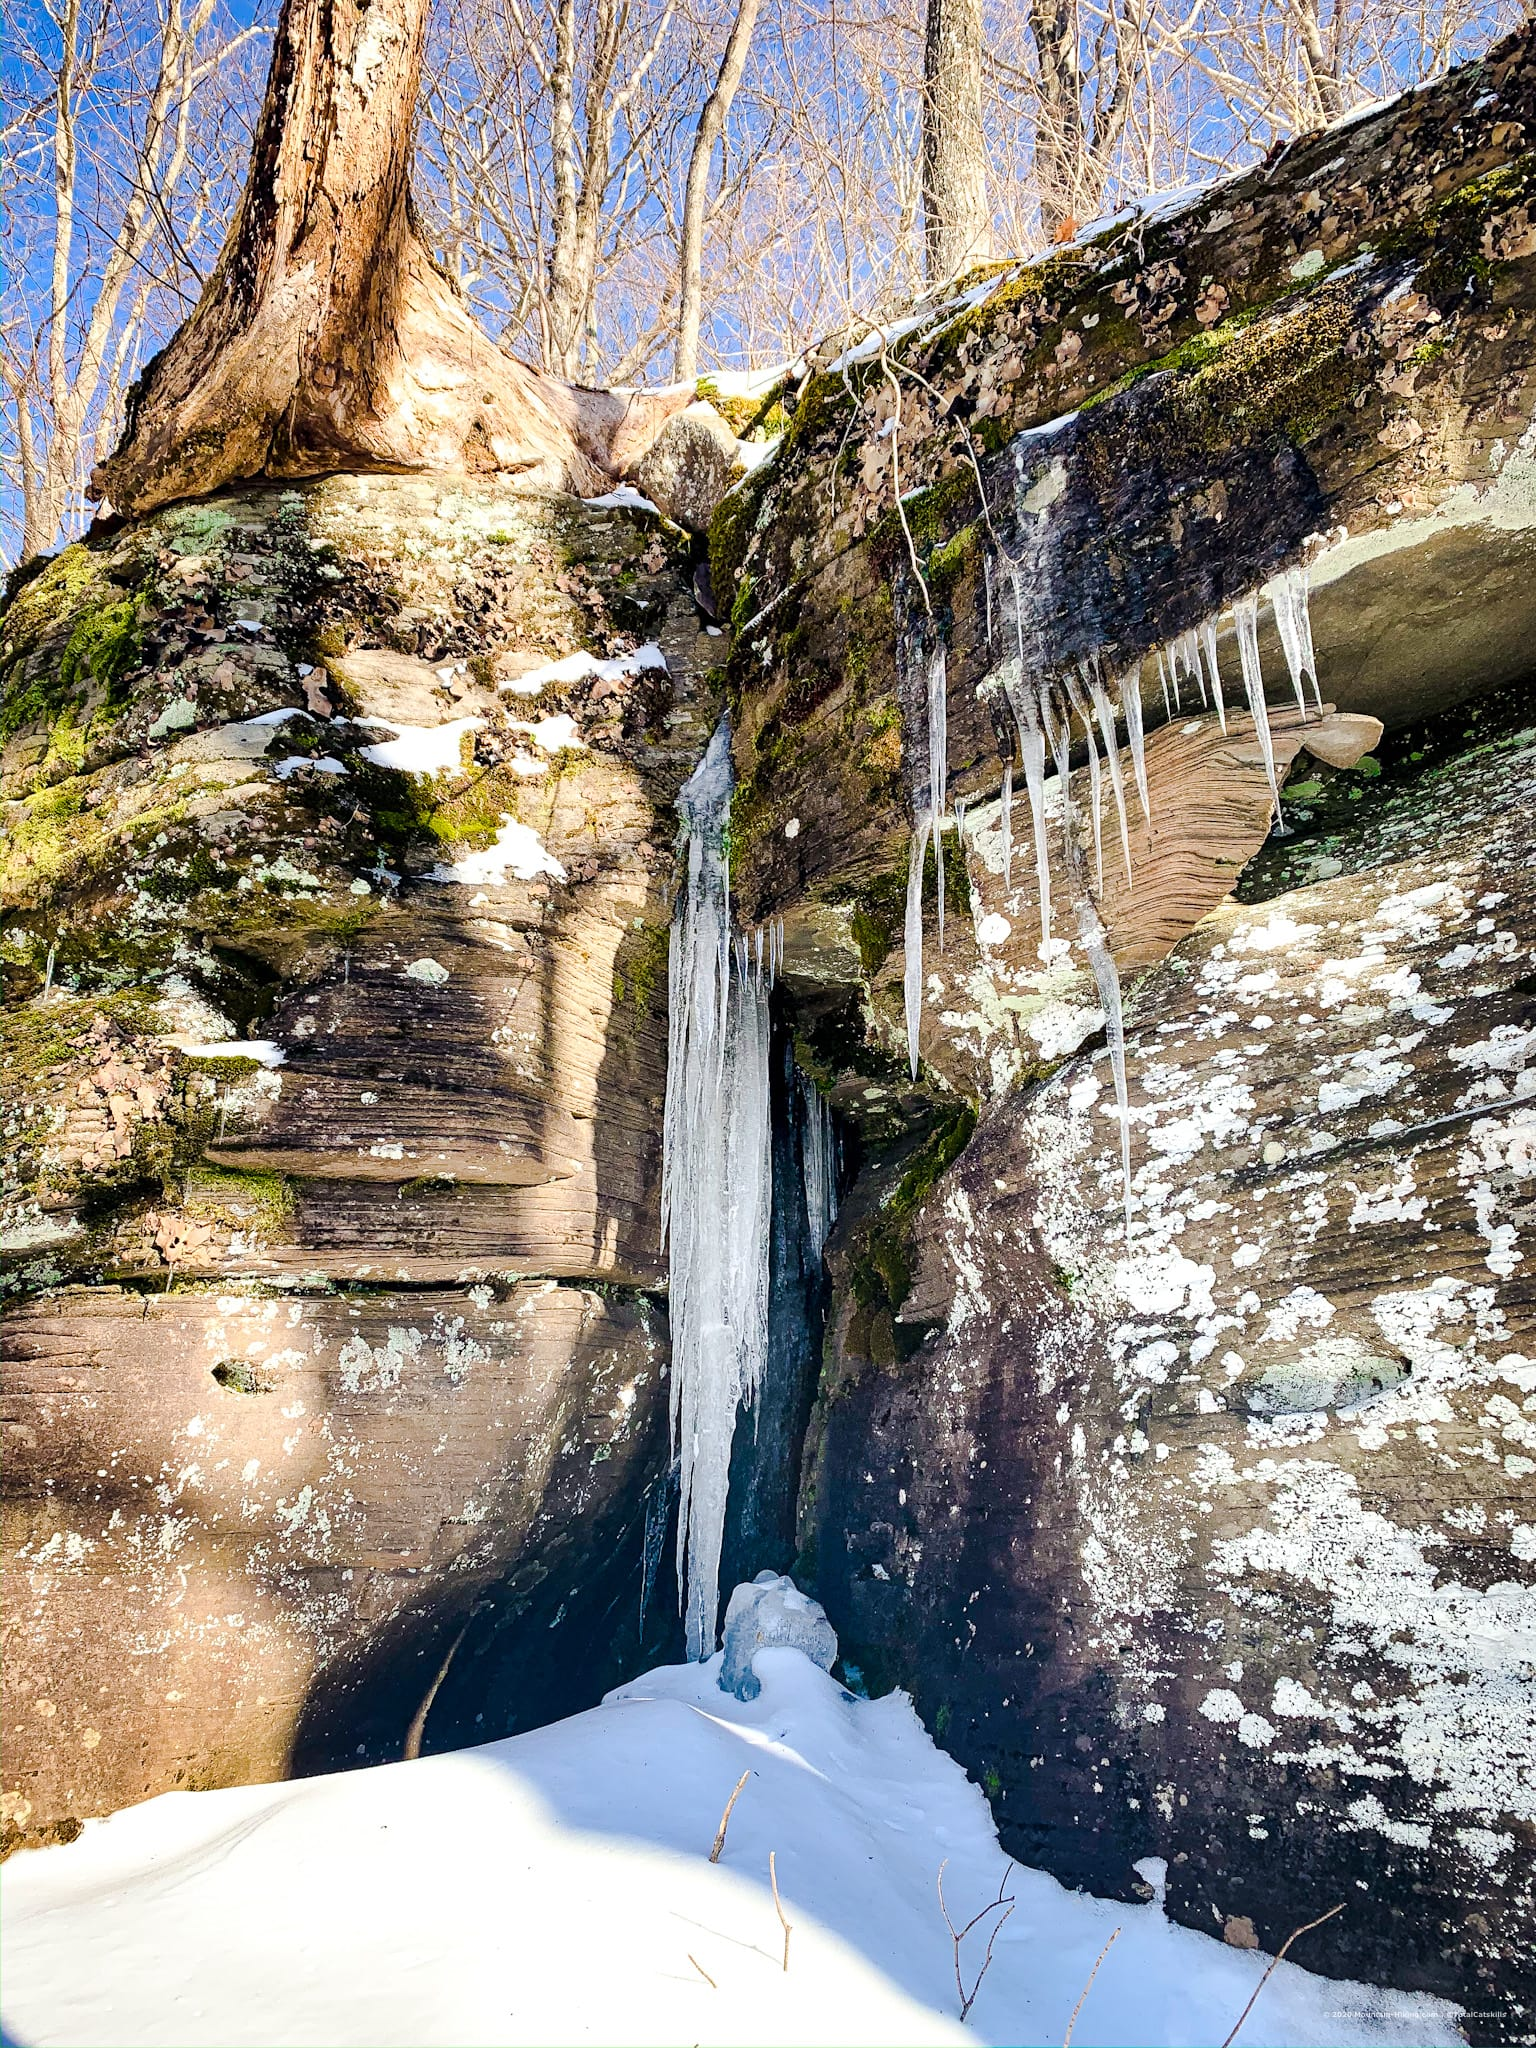 rocks, icicles